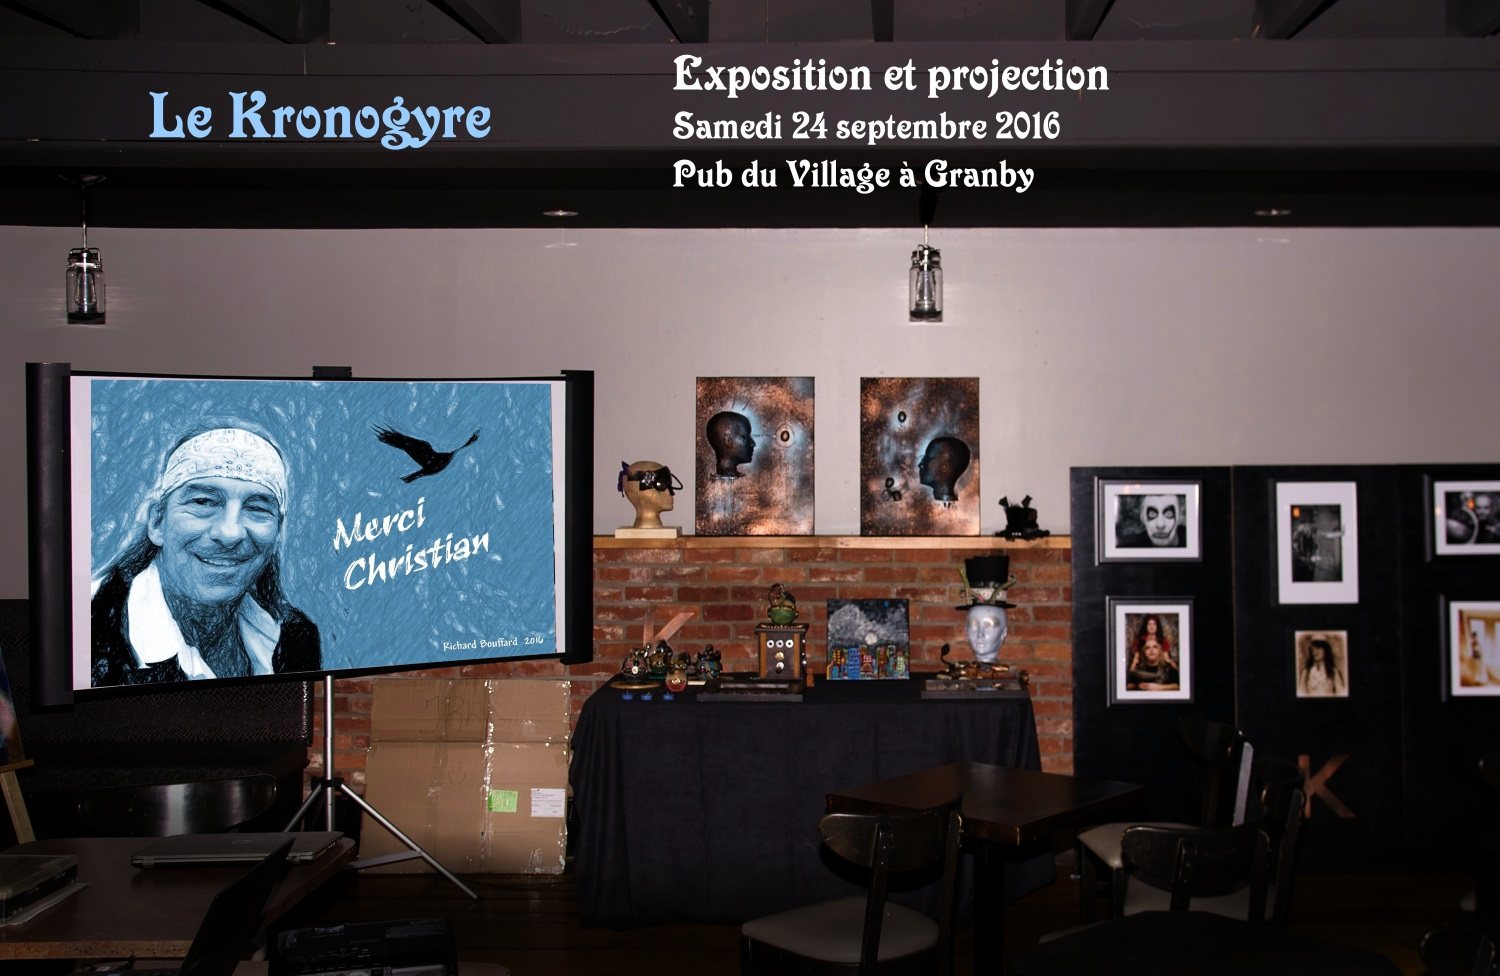 expo projection